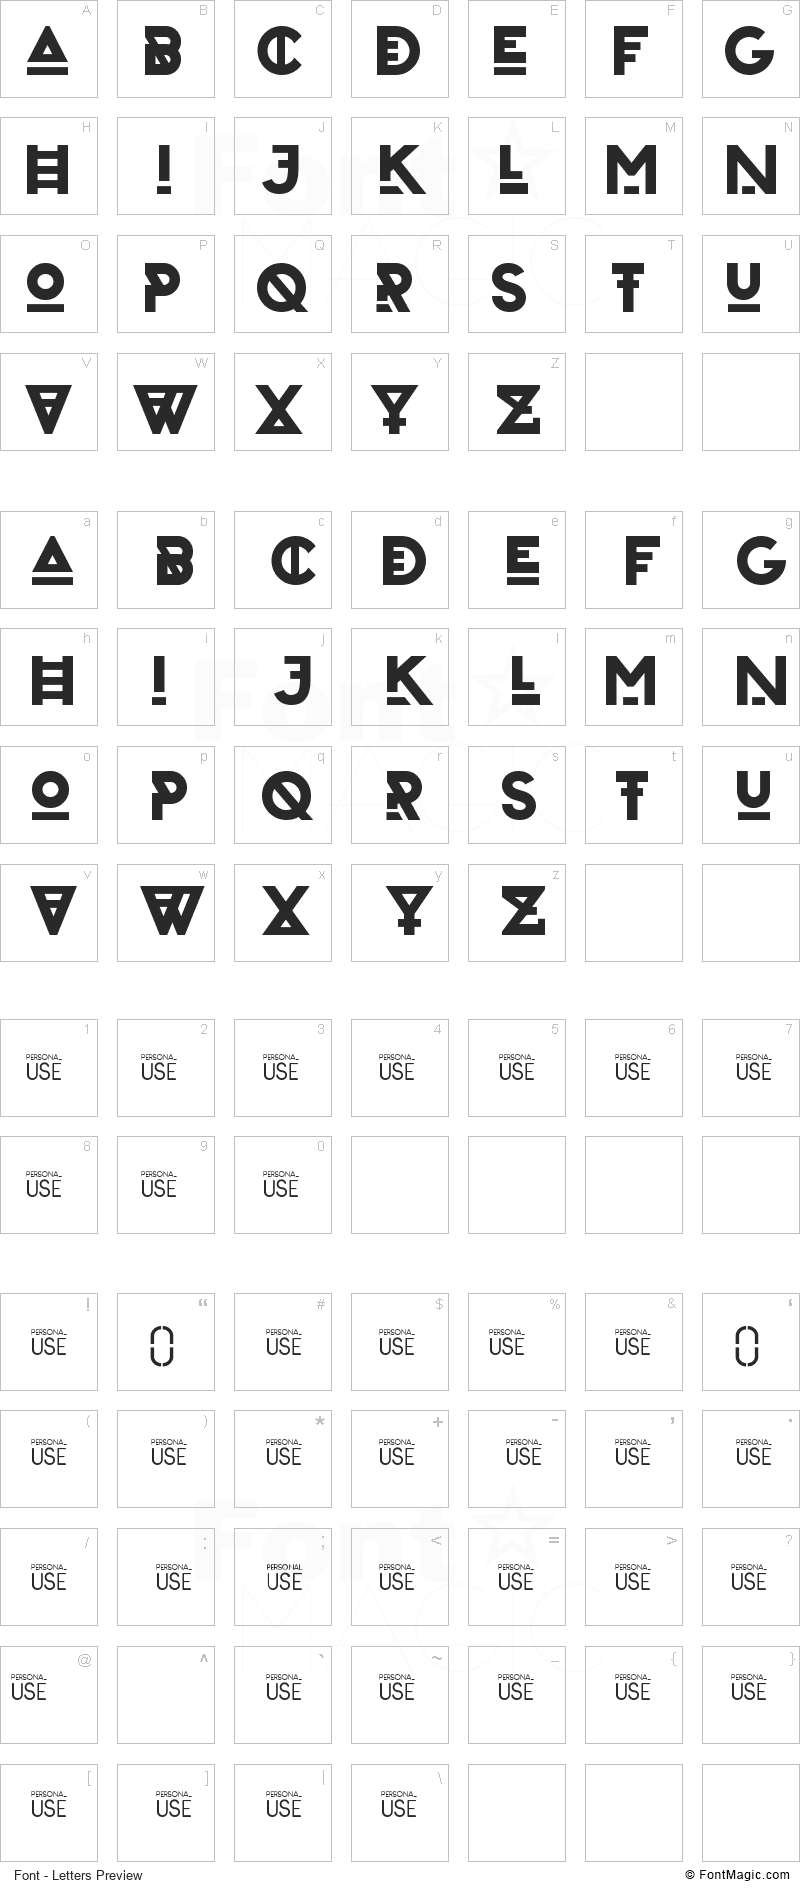 Zilap Urban Font - All Latters Preview Chart